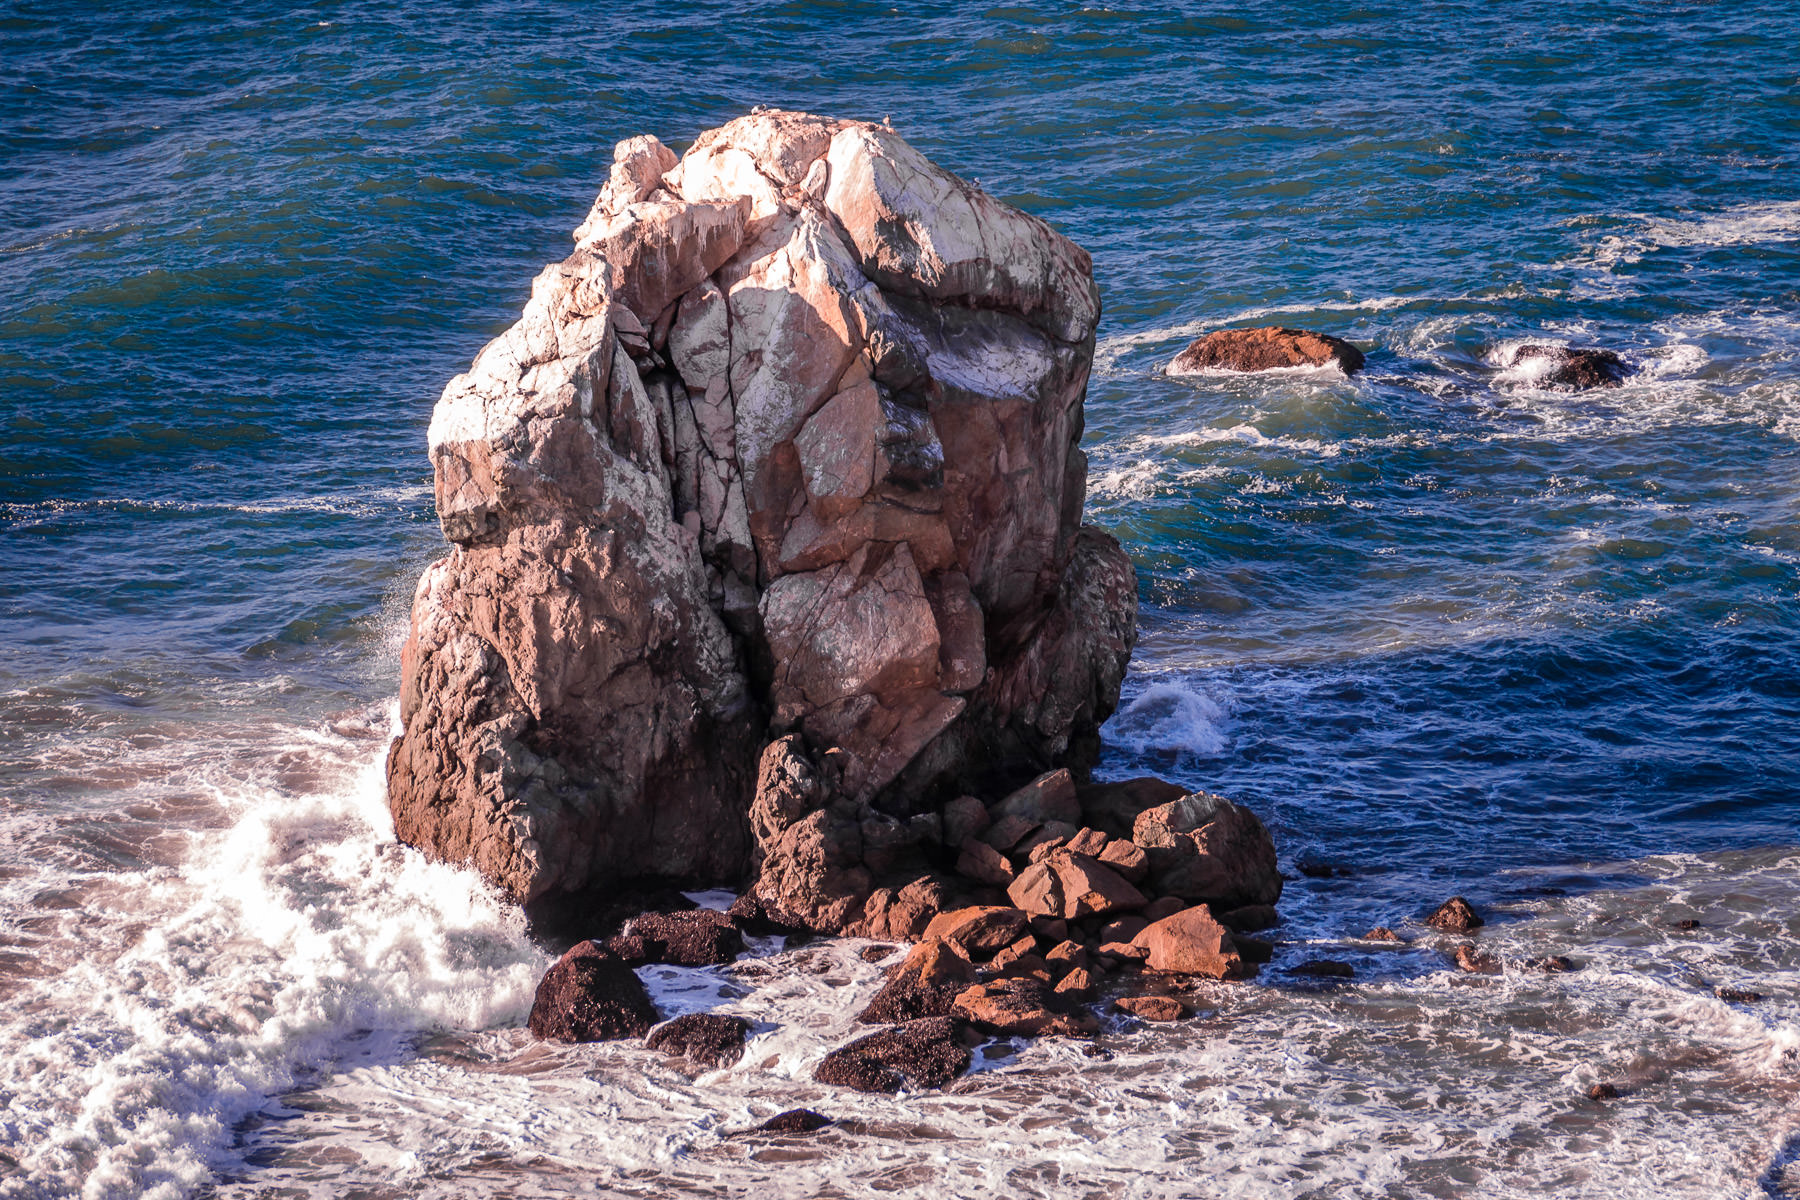 Waves crash onto rocks at San Francisco's Lands End.